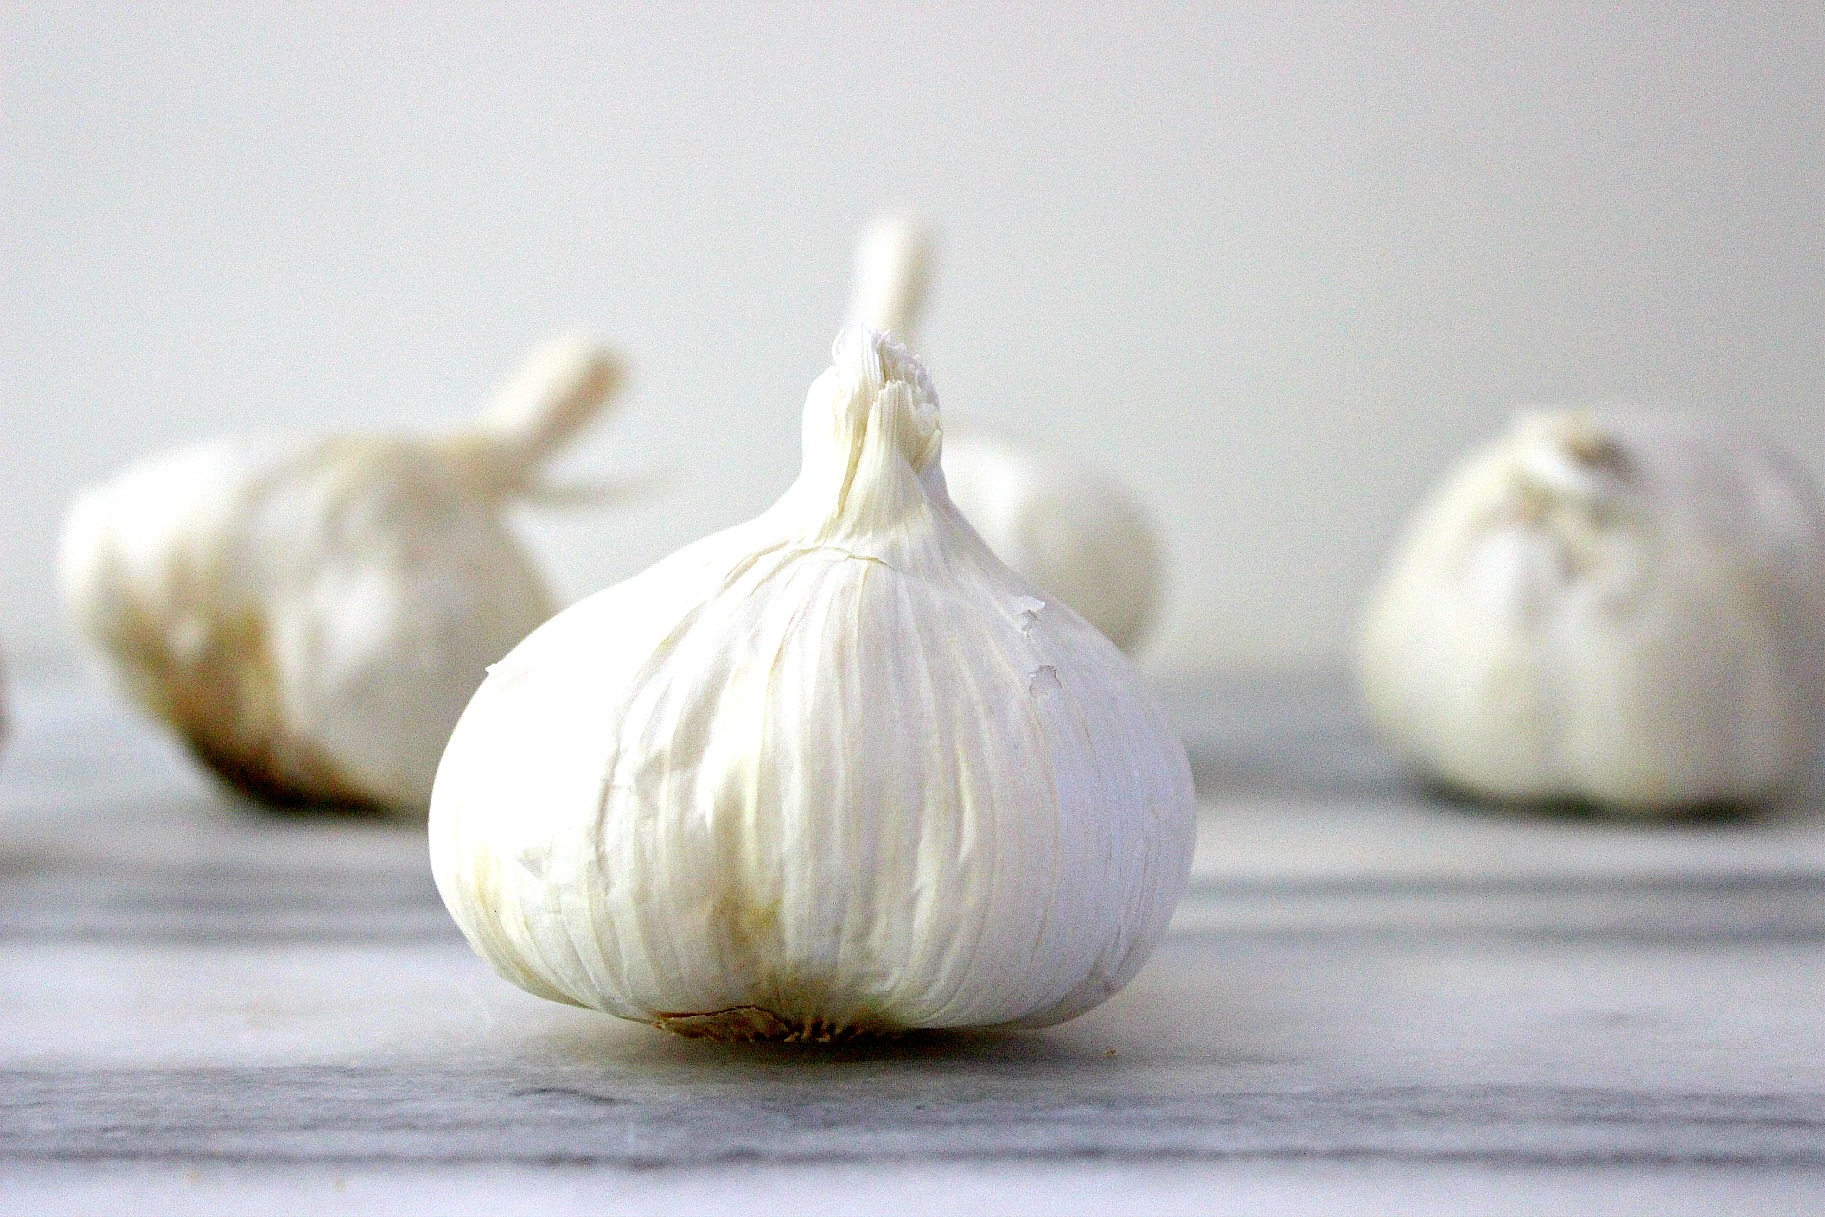 Roasted garlic clove